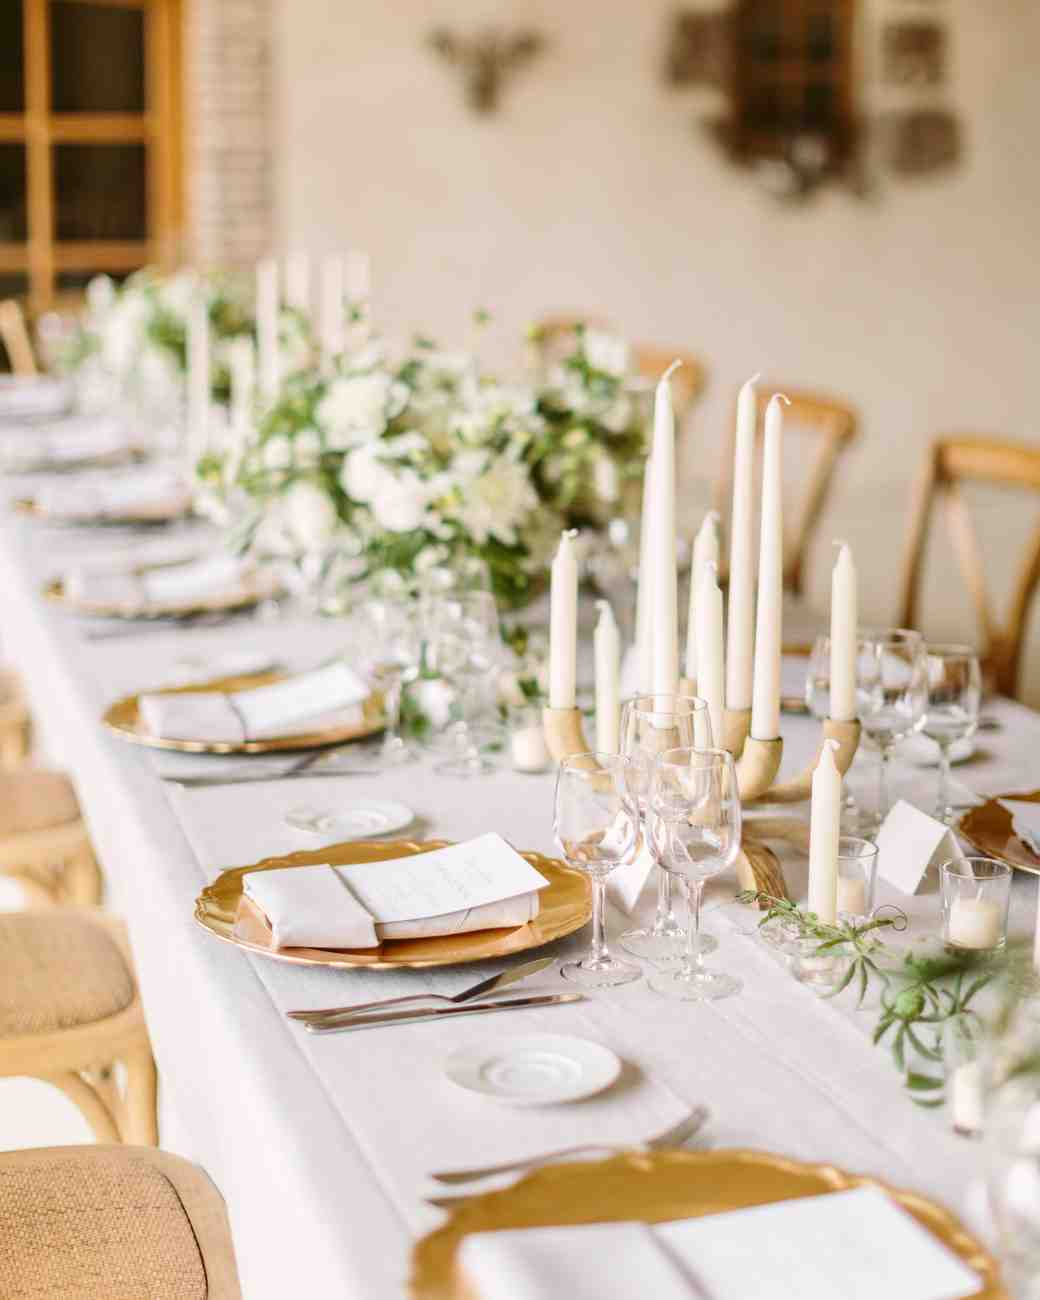 anneclaire-chris-wedding-france-table-058-s113034-00716.jpg